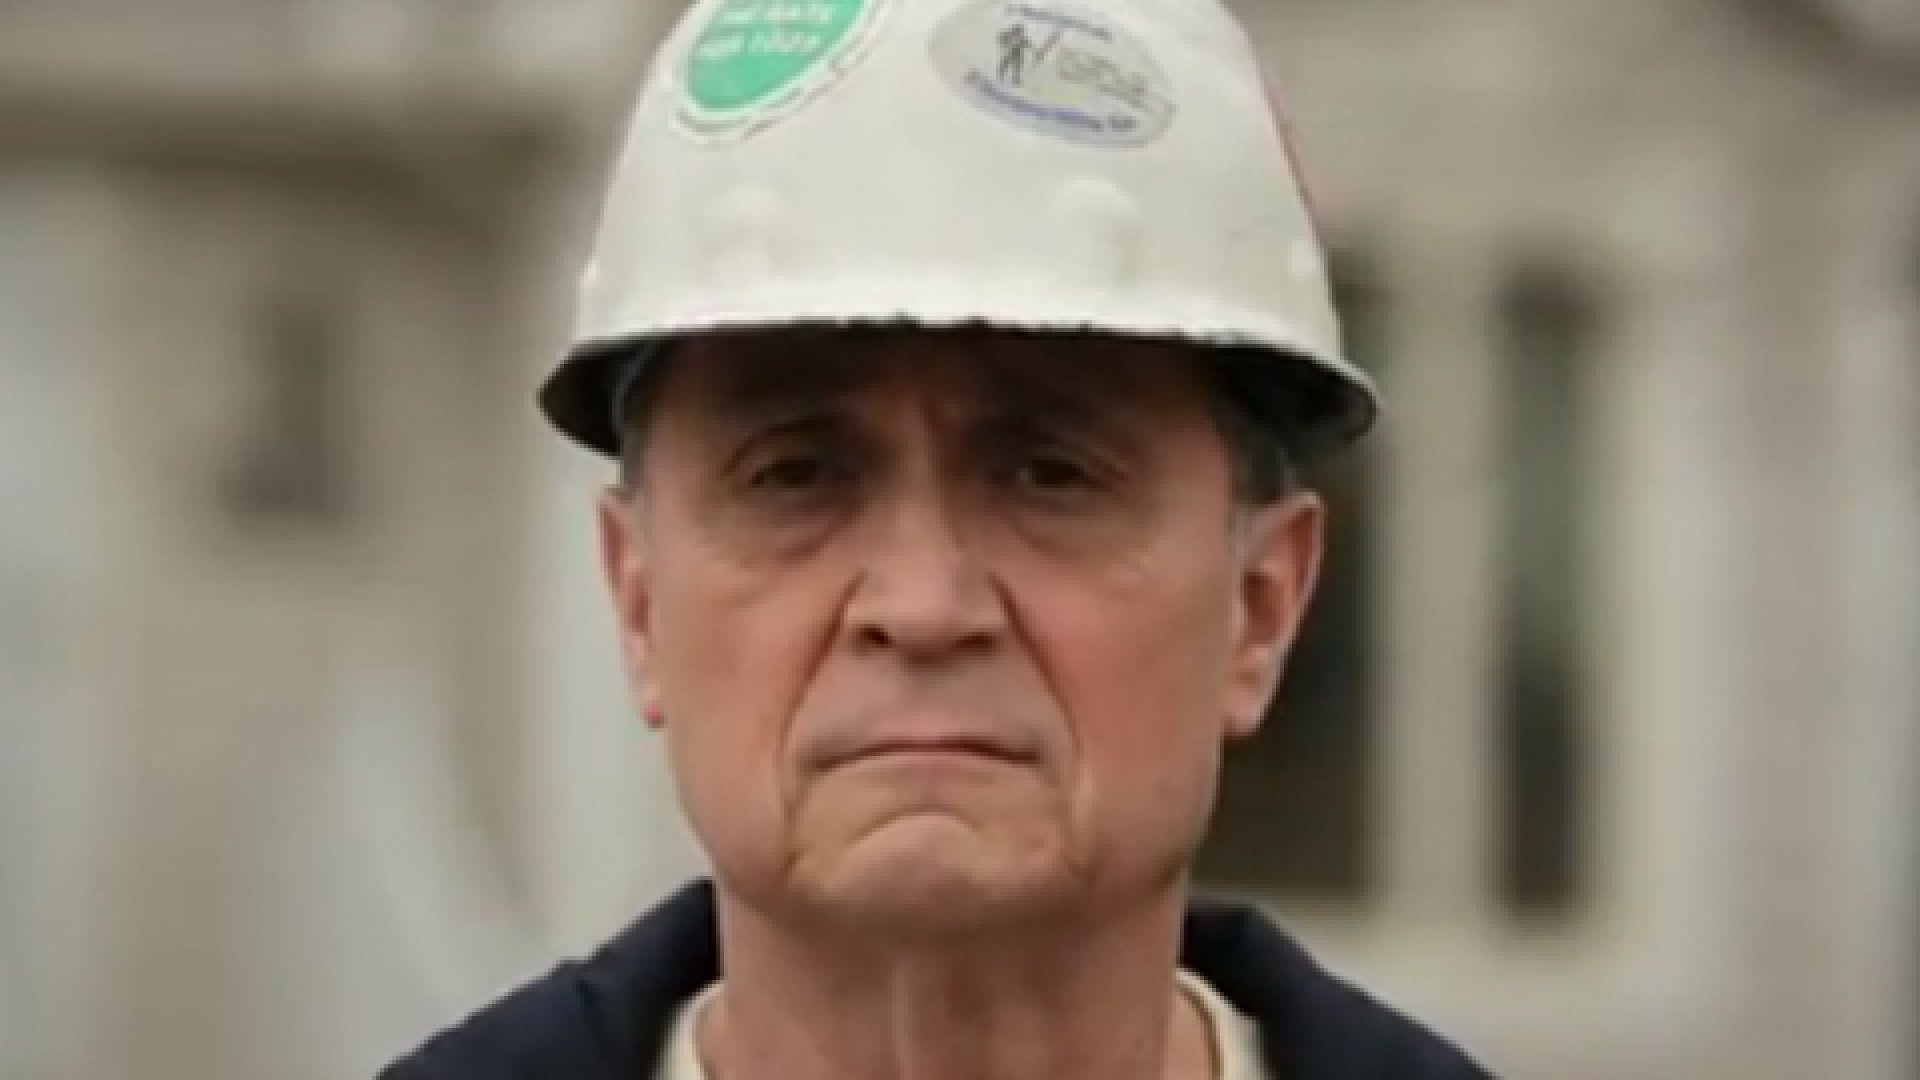 The Obama campaign's ad criticizing Mitt Romney's private equity experience featured this displaced steel mill worker, Joe Soptic.